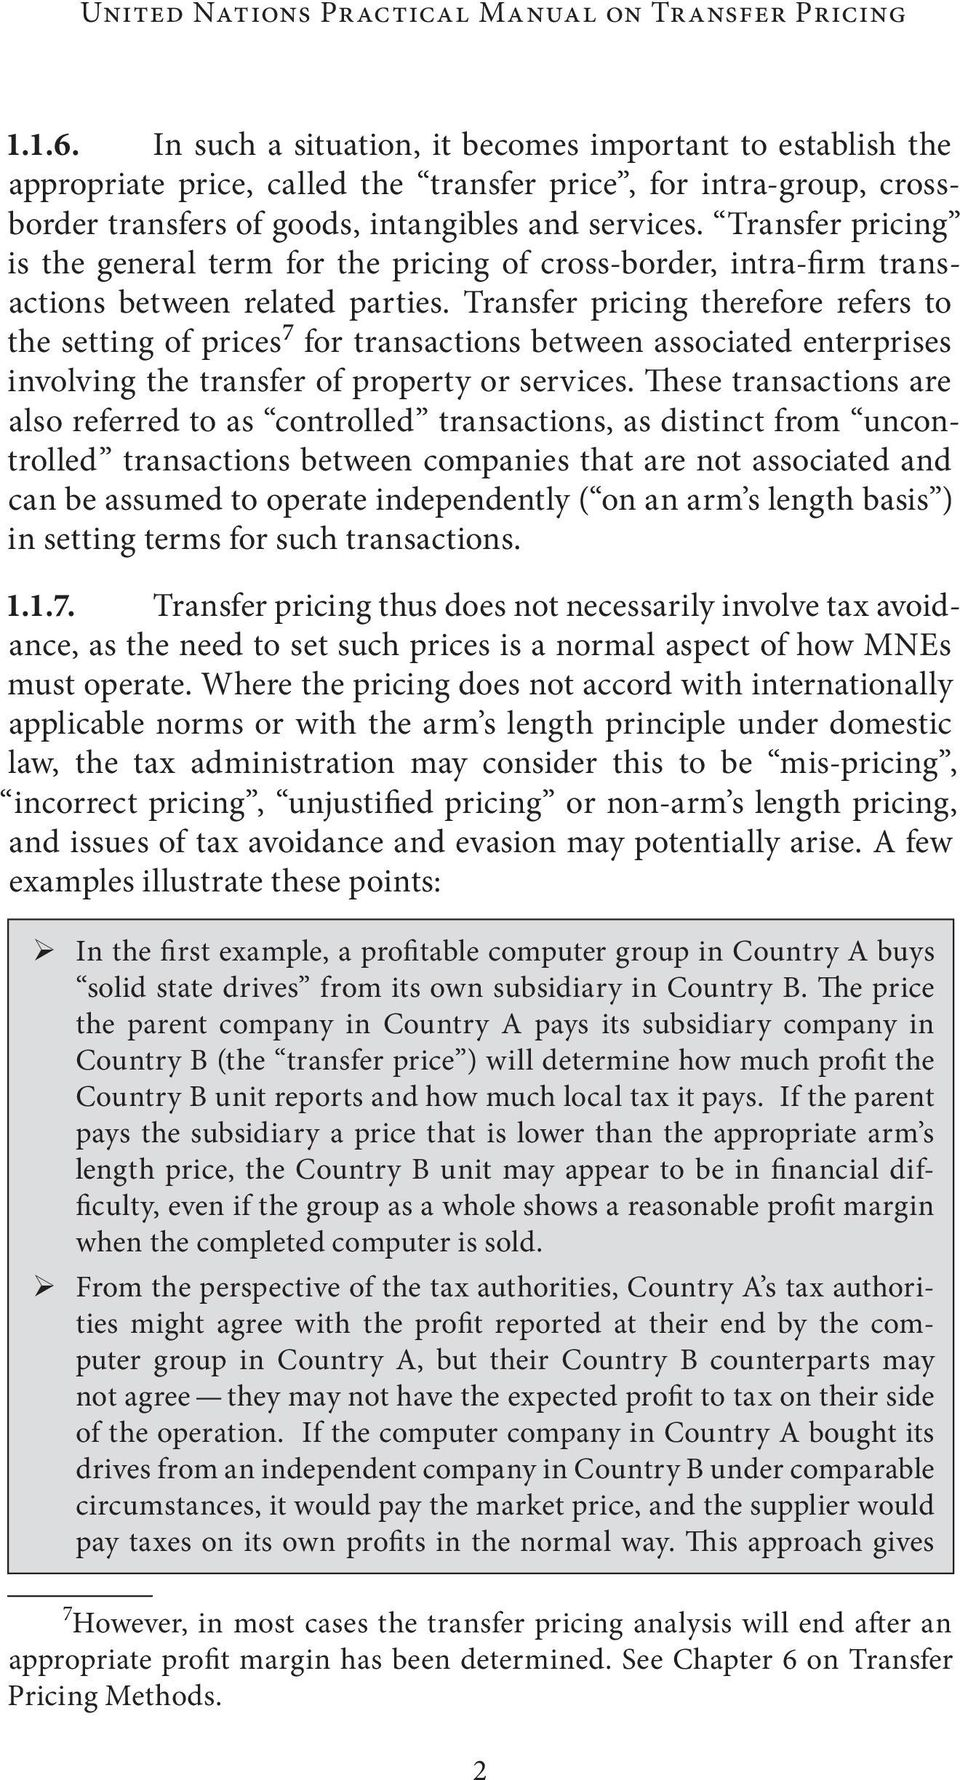 Transfer pricing is the general term for the pricing of cross-border, intra-firm transactions between related parties.